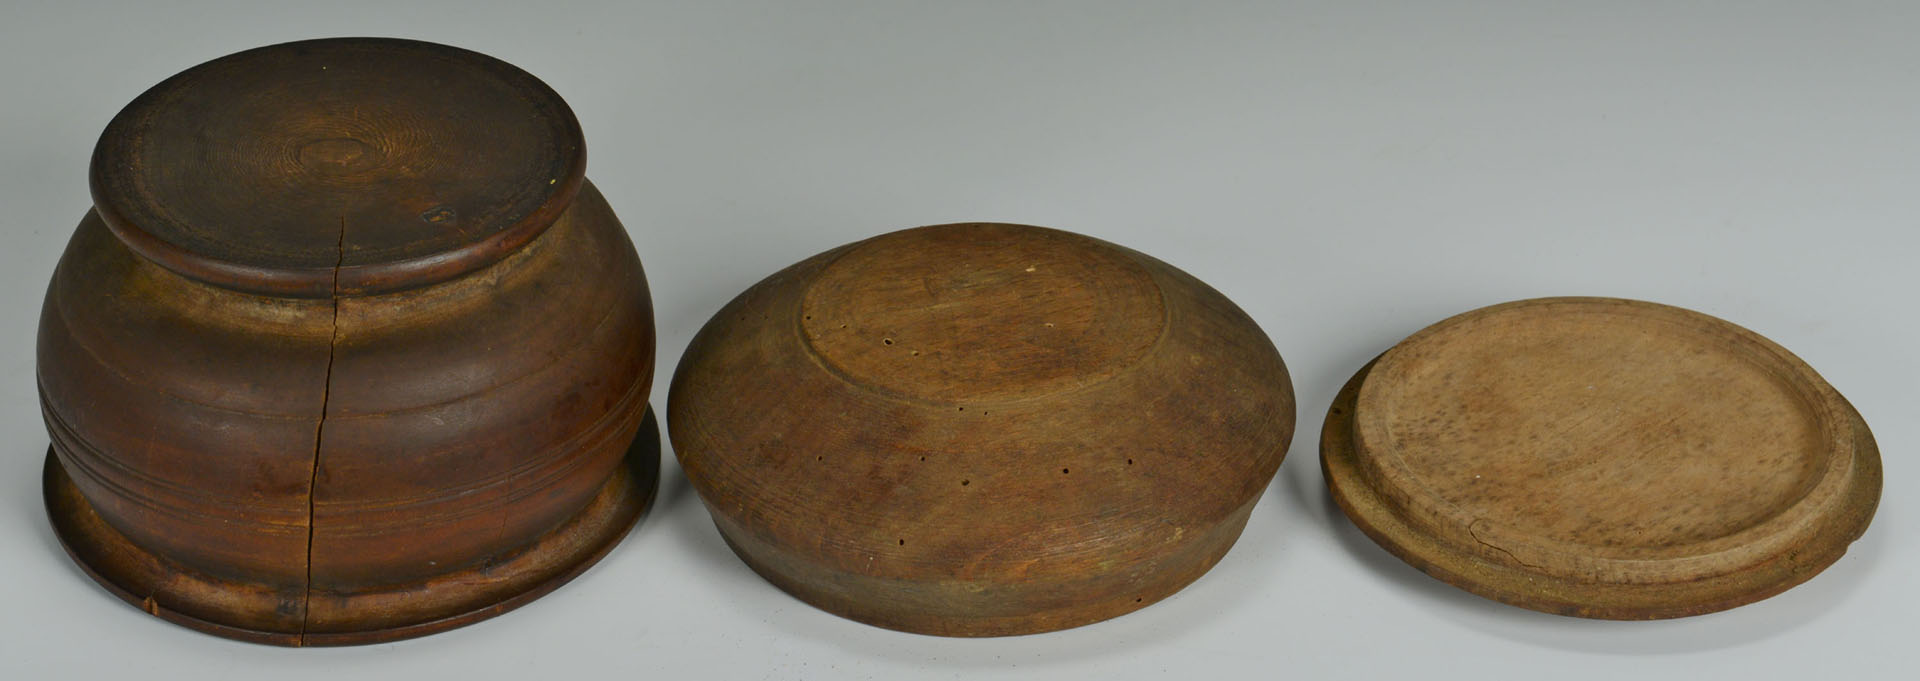 Grouping of Shaker Boxes, Firkins, Treenware